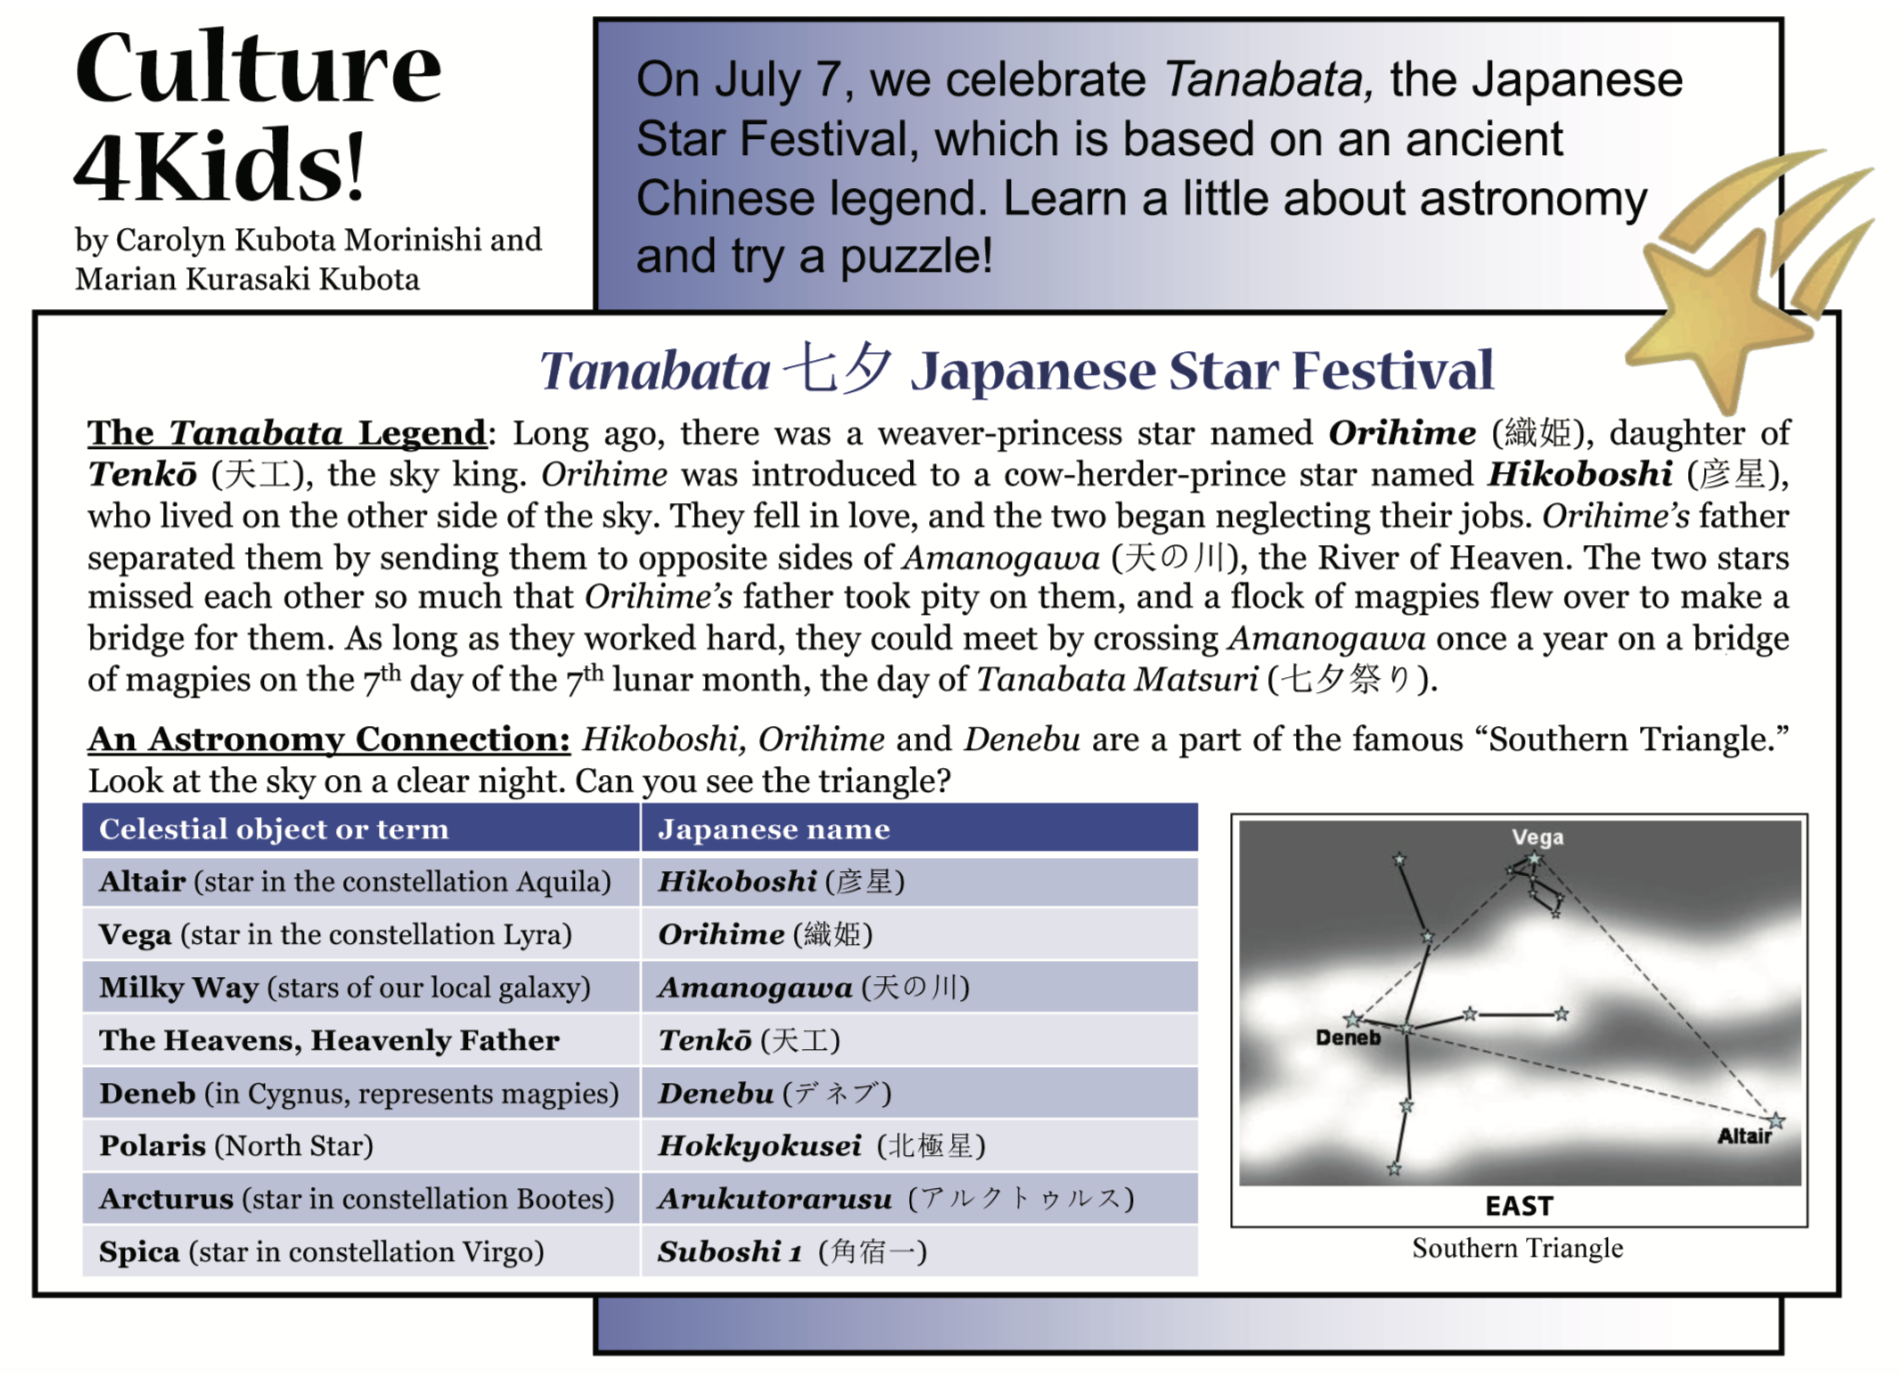 Culture4Kids! 'Tanabata Japanese Star Festival' featured in July 5, 2019 Issue